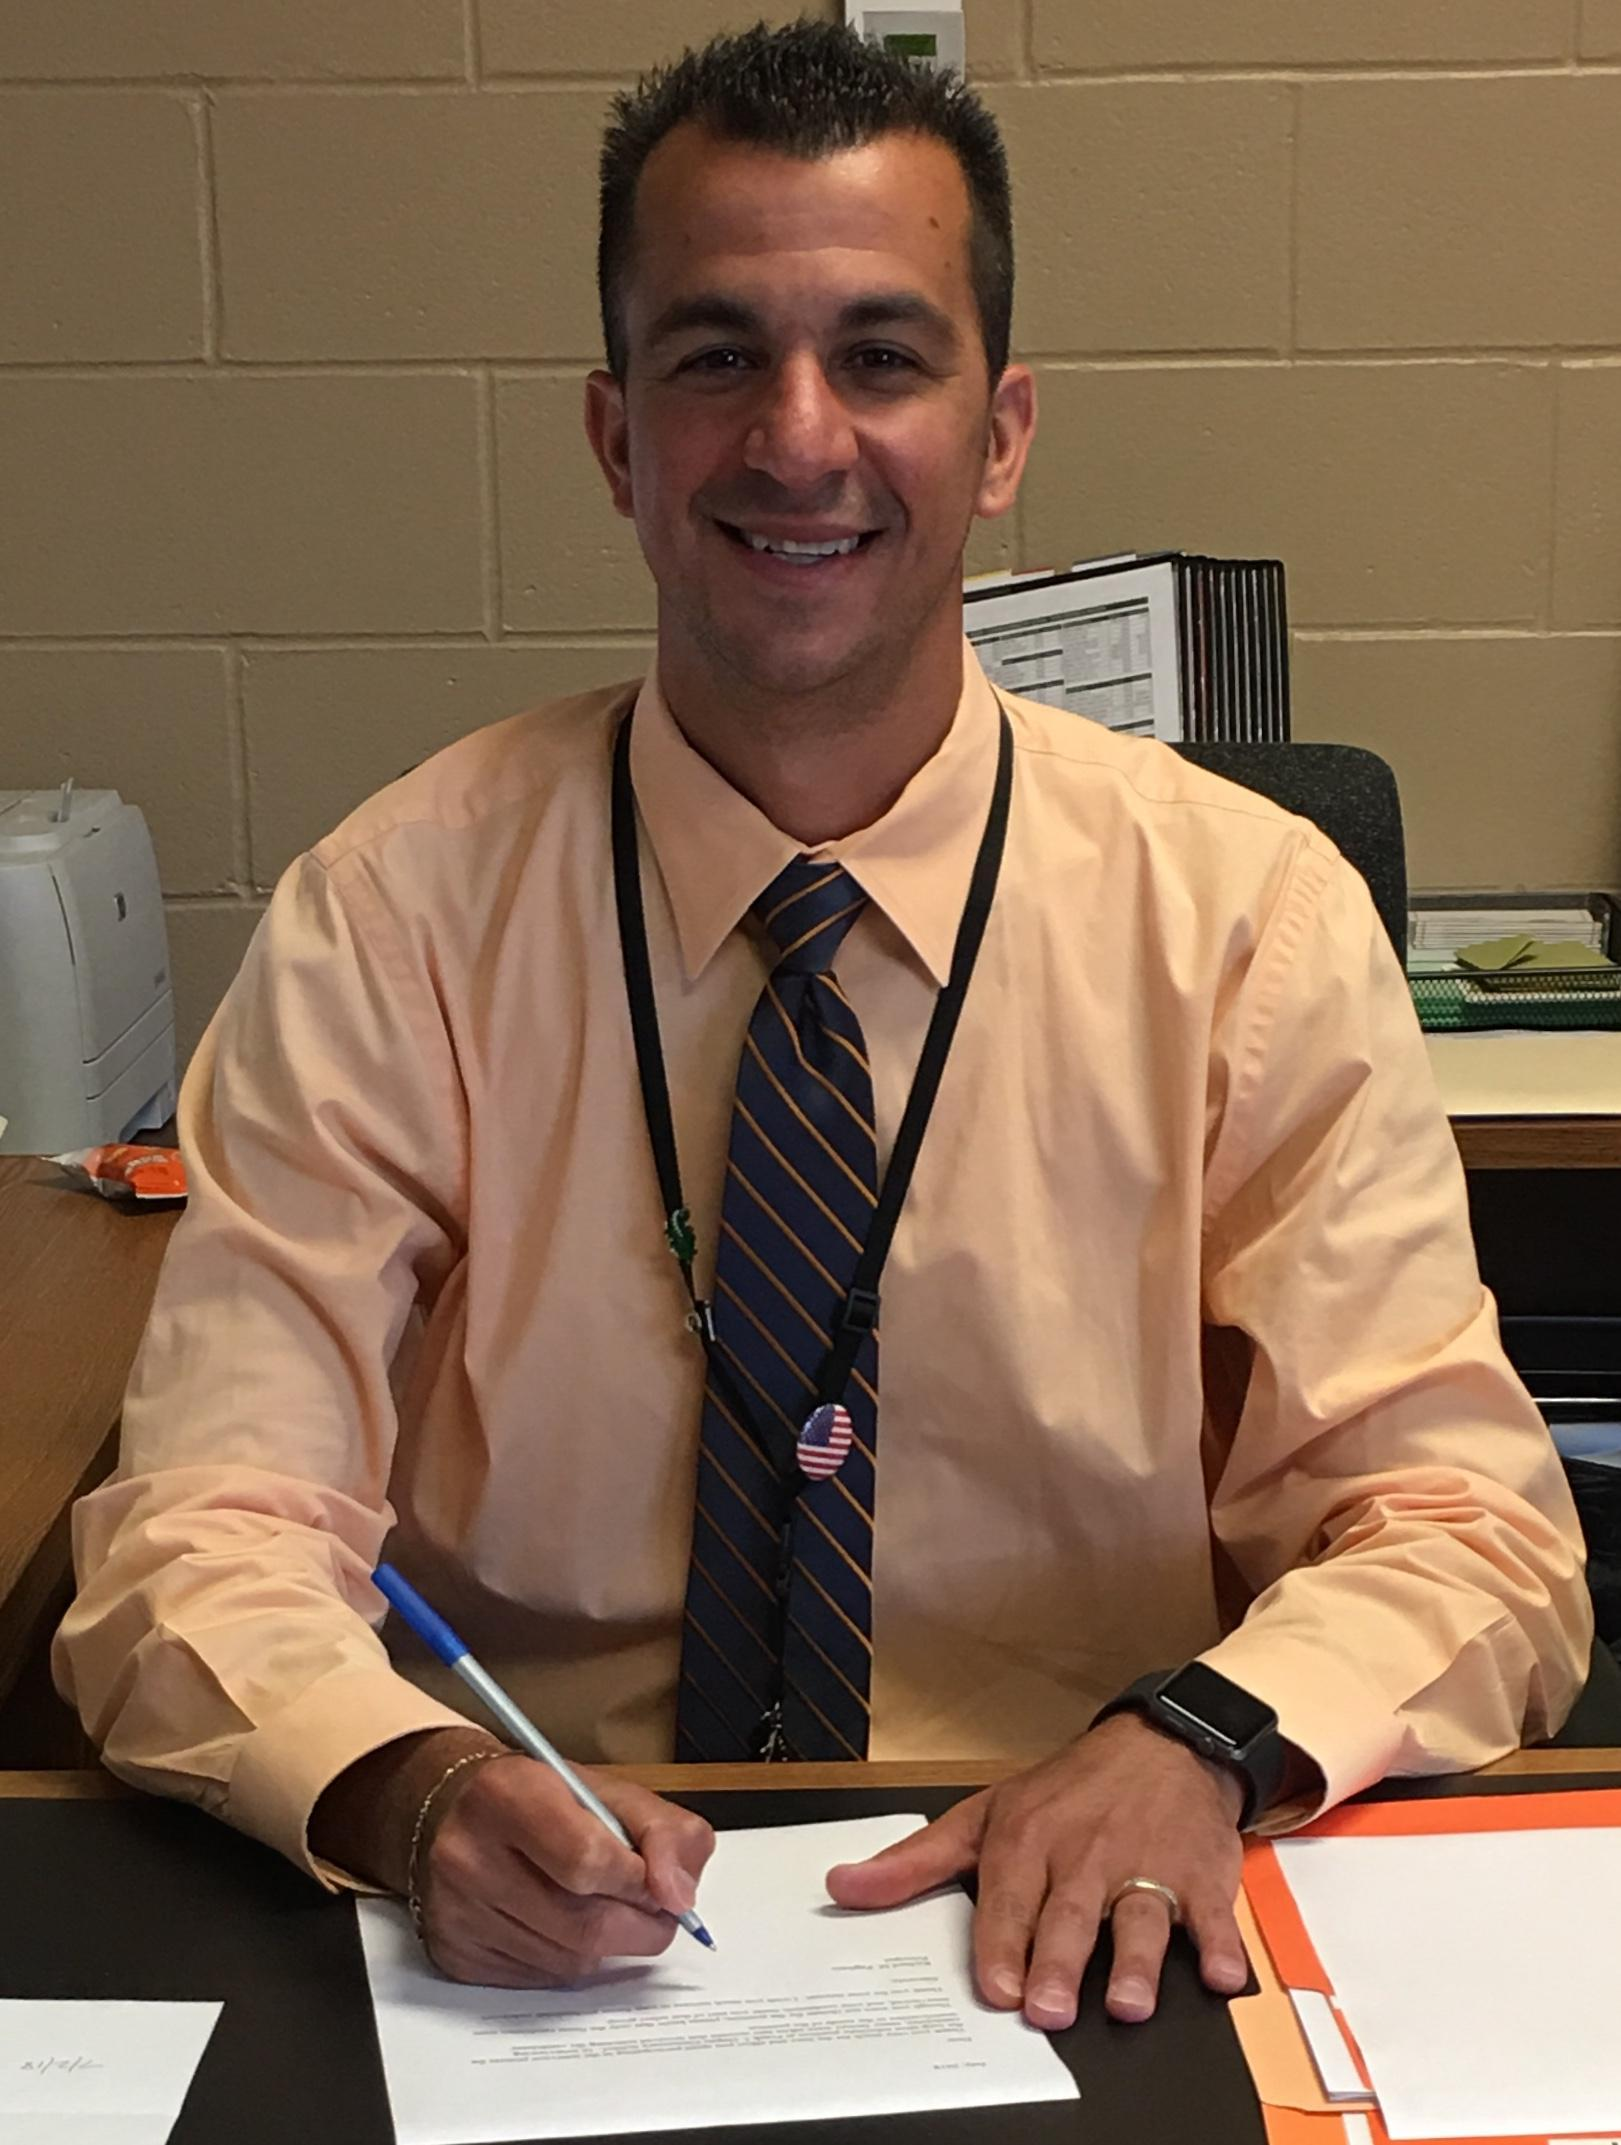 photo of Richard Pagliaro, Principal - Frank J. Dugan Elementary School